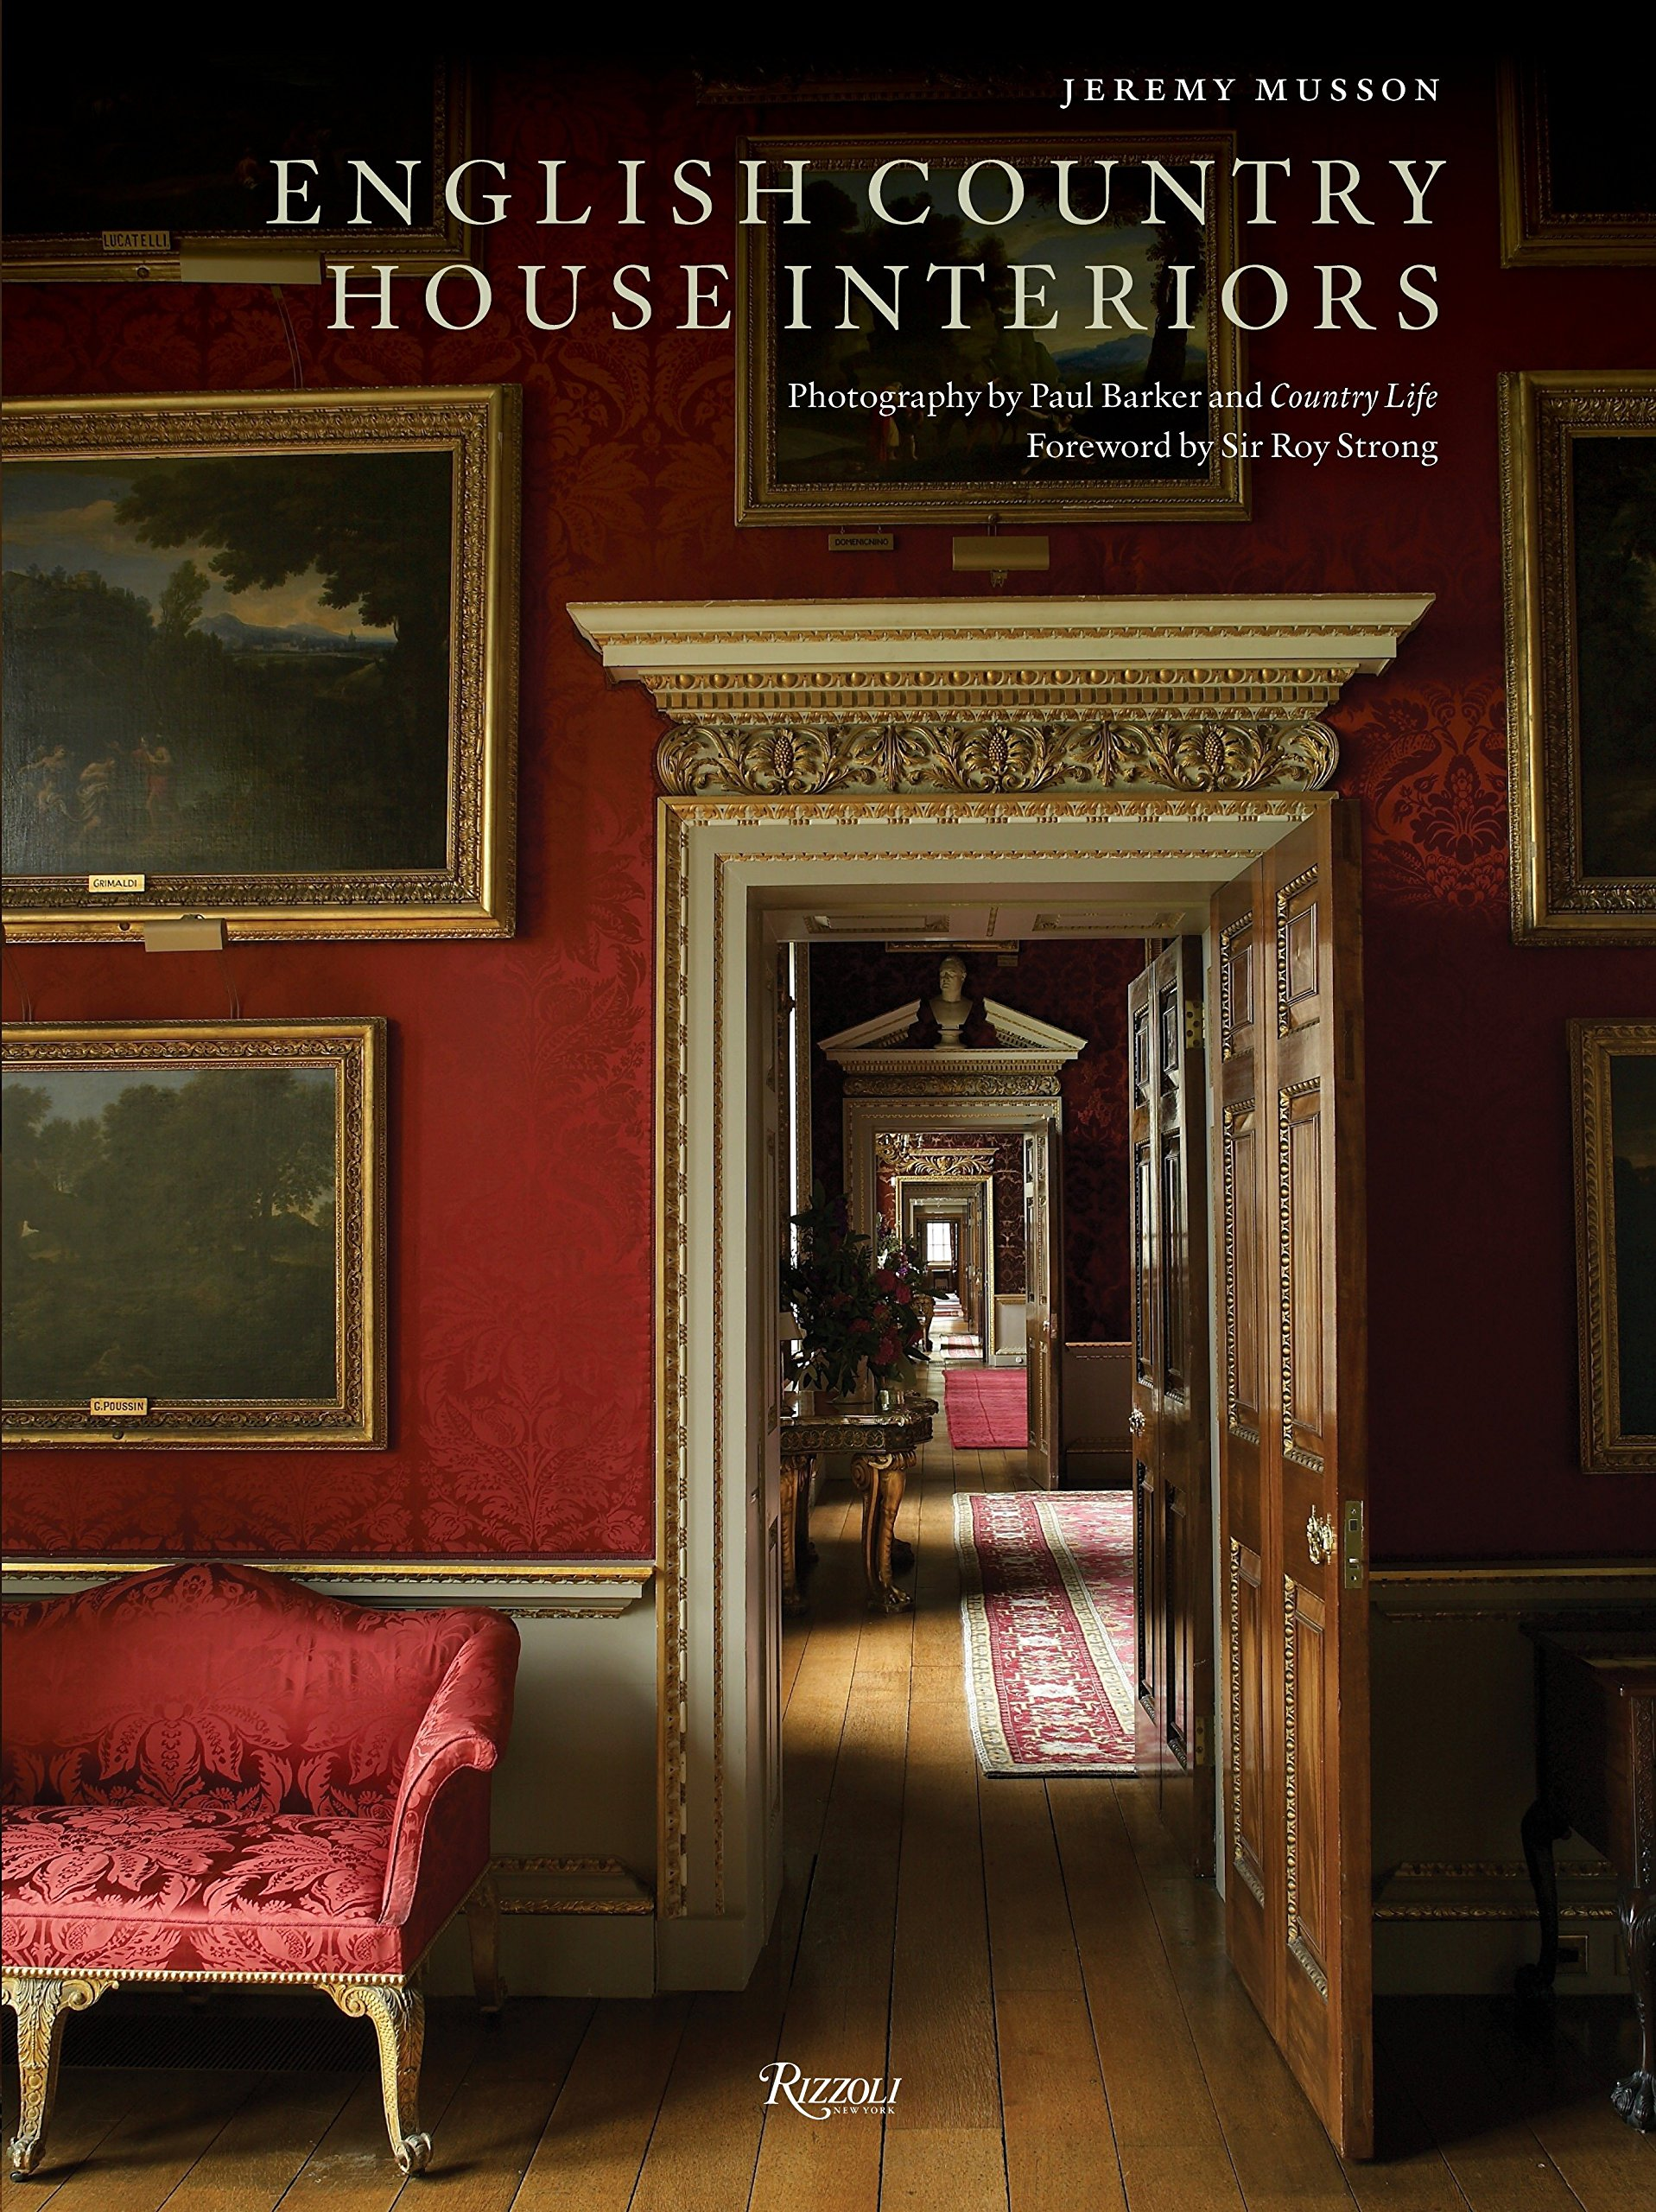 English Country House Interiors: Jeremy Musson, Paul Barker, Sir Roy  Strong, Country Life: 9780847835690: Amazon.com: Books